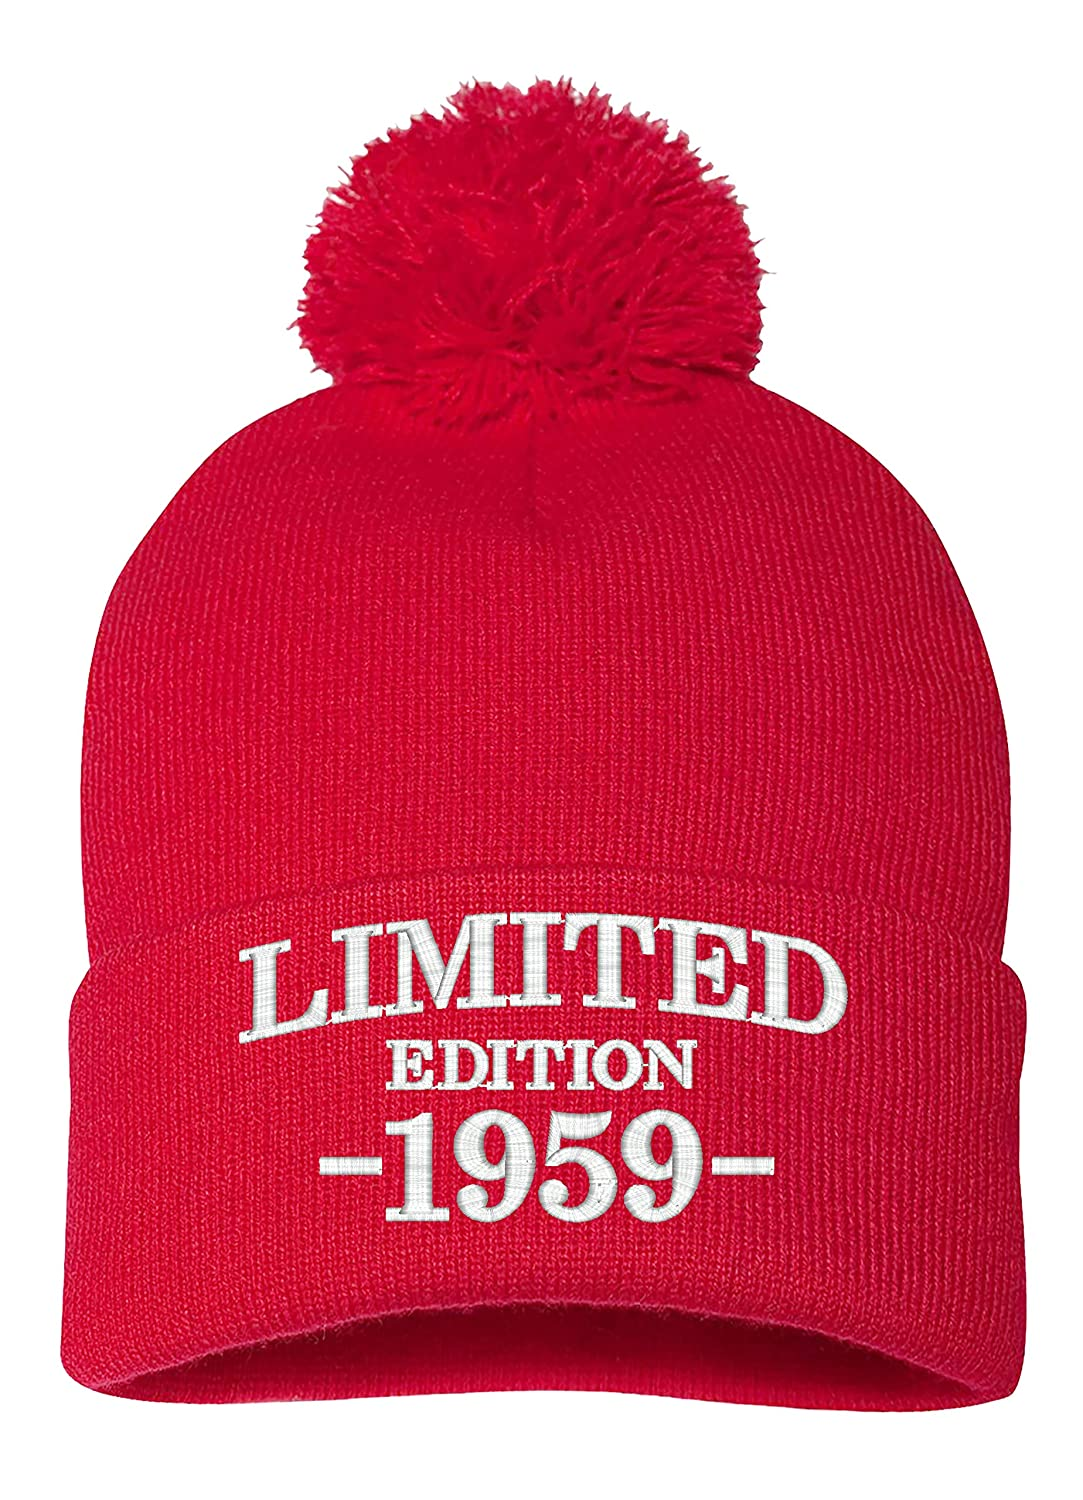 PP BNE 1959 60th Birthday Gifts Limited Edition All Original Parts Warm Pom Beanie Hat EM 0003 Black At Amazon Mens Clothing Store